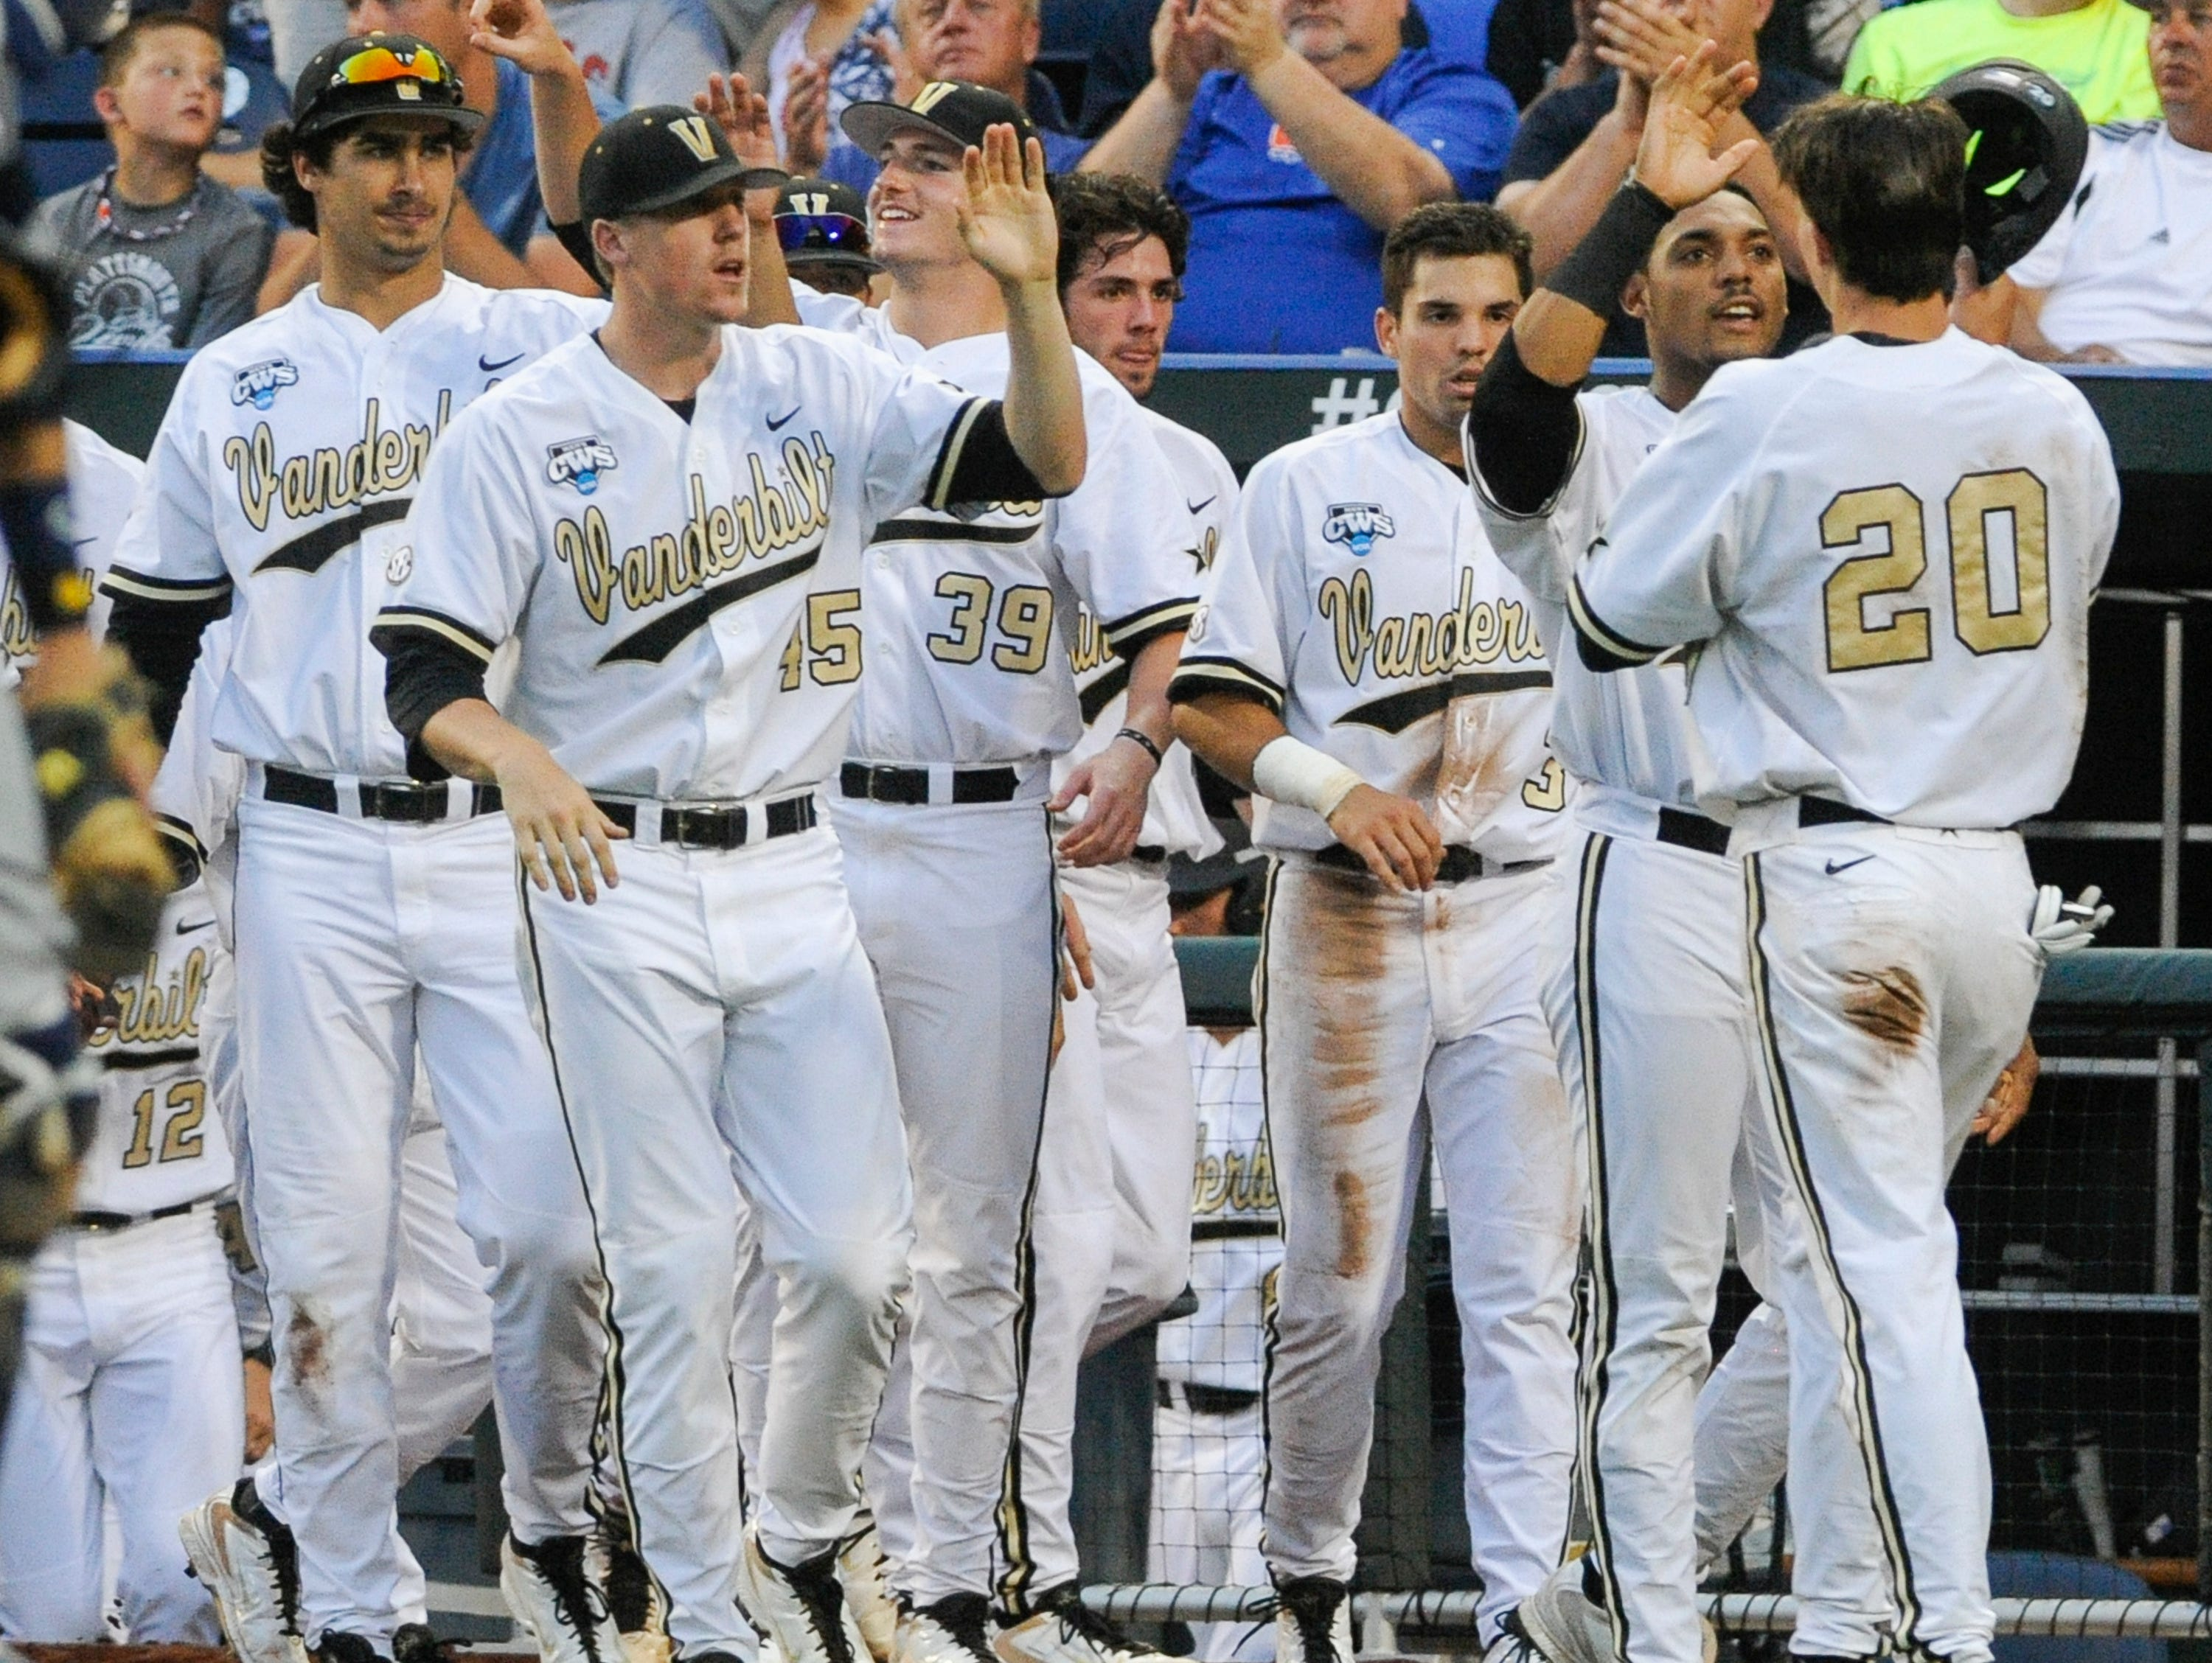 Vanderbilt's Bryan Reynolds (20) is greeted at the dugout after he scored against UC Irvine on a double by Zander Wiel in the fifth inning of an NCAA baseball College World Series game in Omaha, Neb., Monday, June 16, 2014. (AP Photo/Eric Francis)